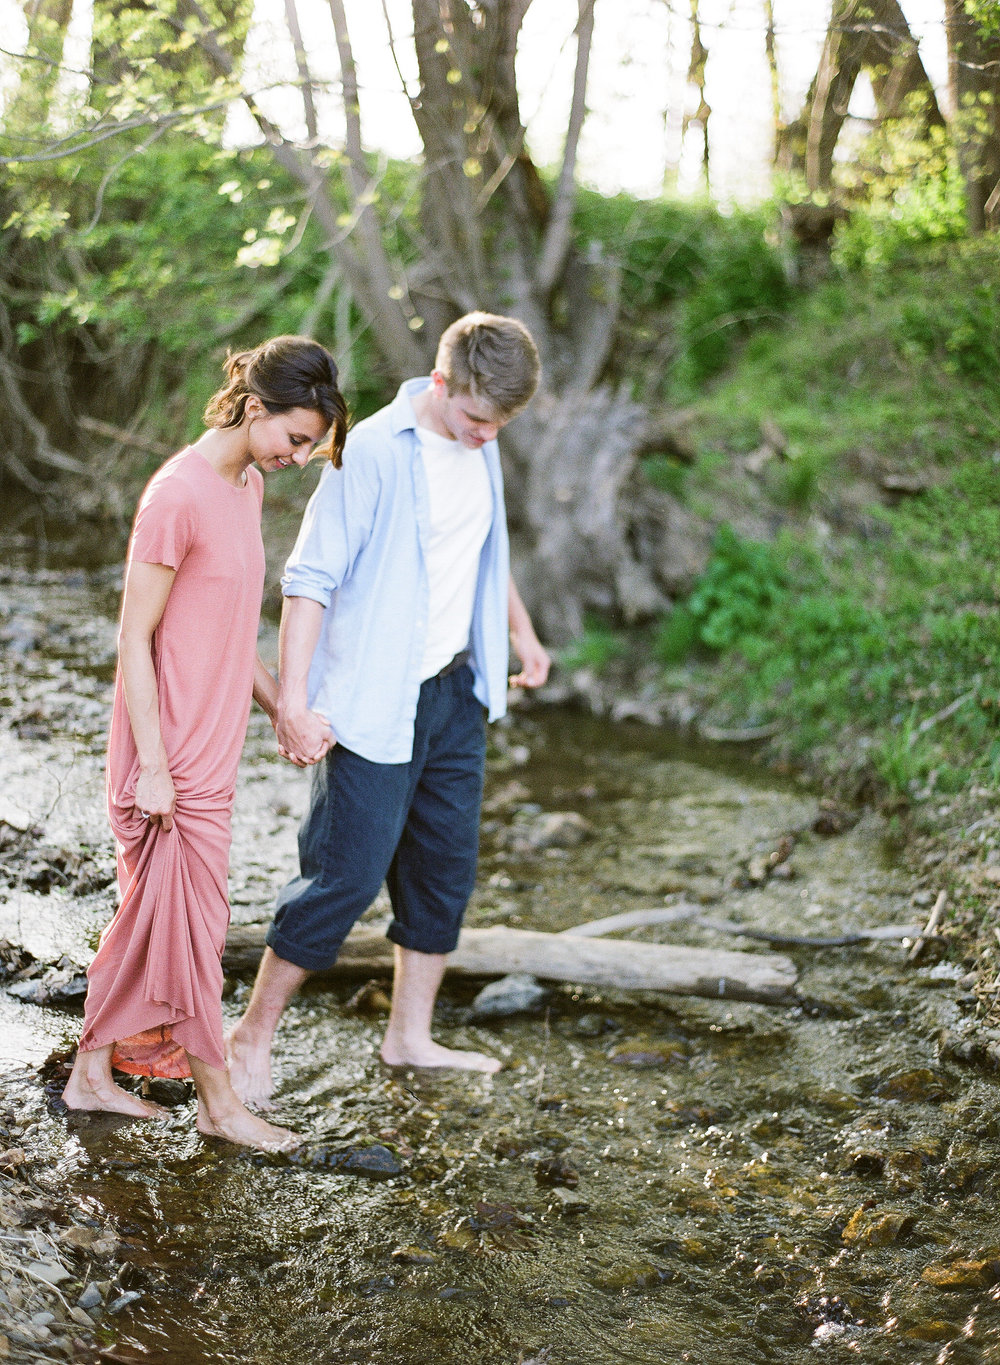 Fine_Art_Photographer_Kristen_Lynne_Photography_Engagement-Photo-42.jpg